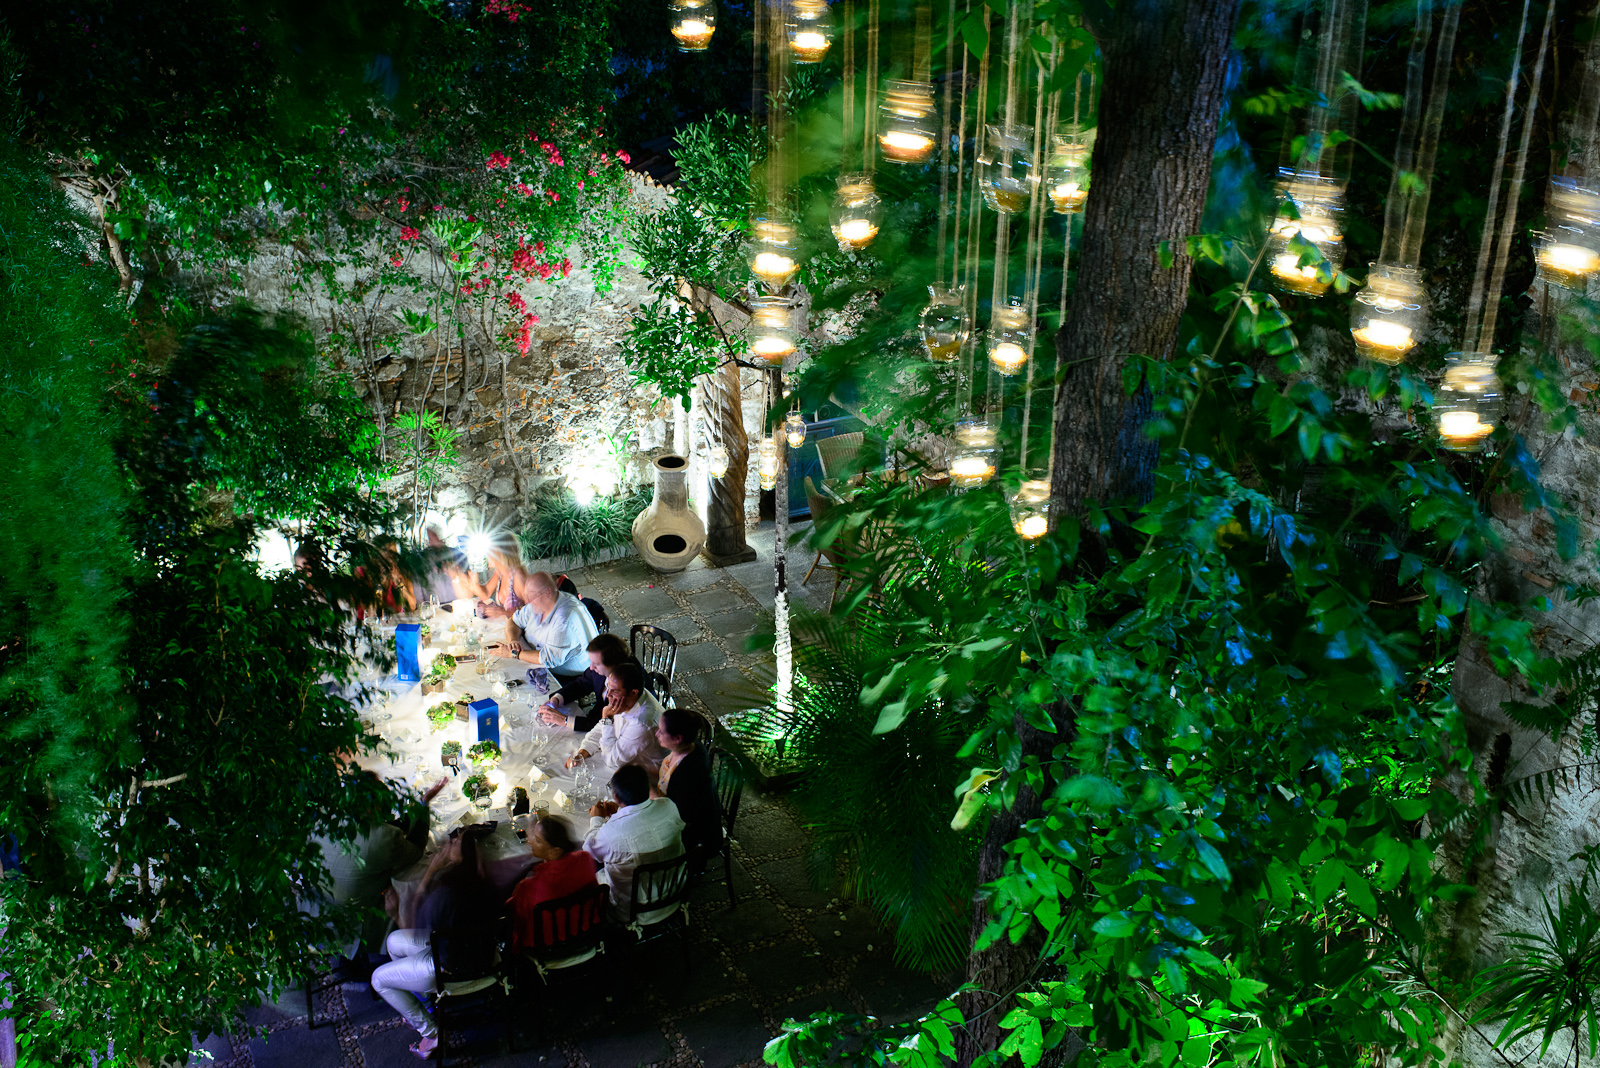 6th Course: A quiet dinner in a 400-year-old estate